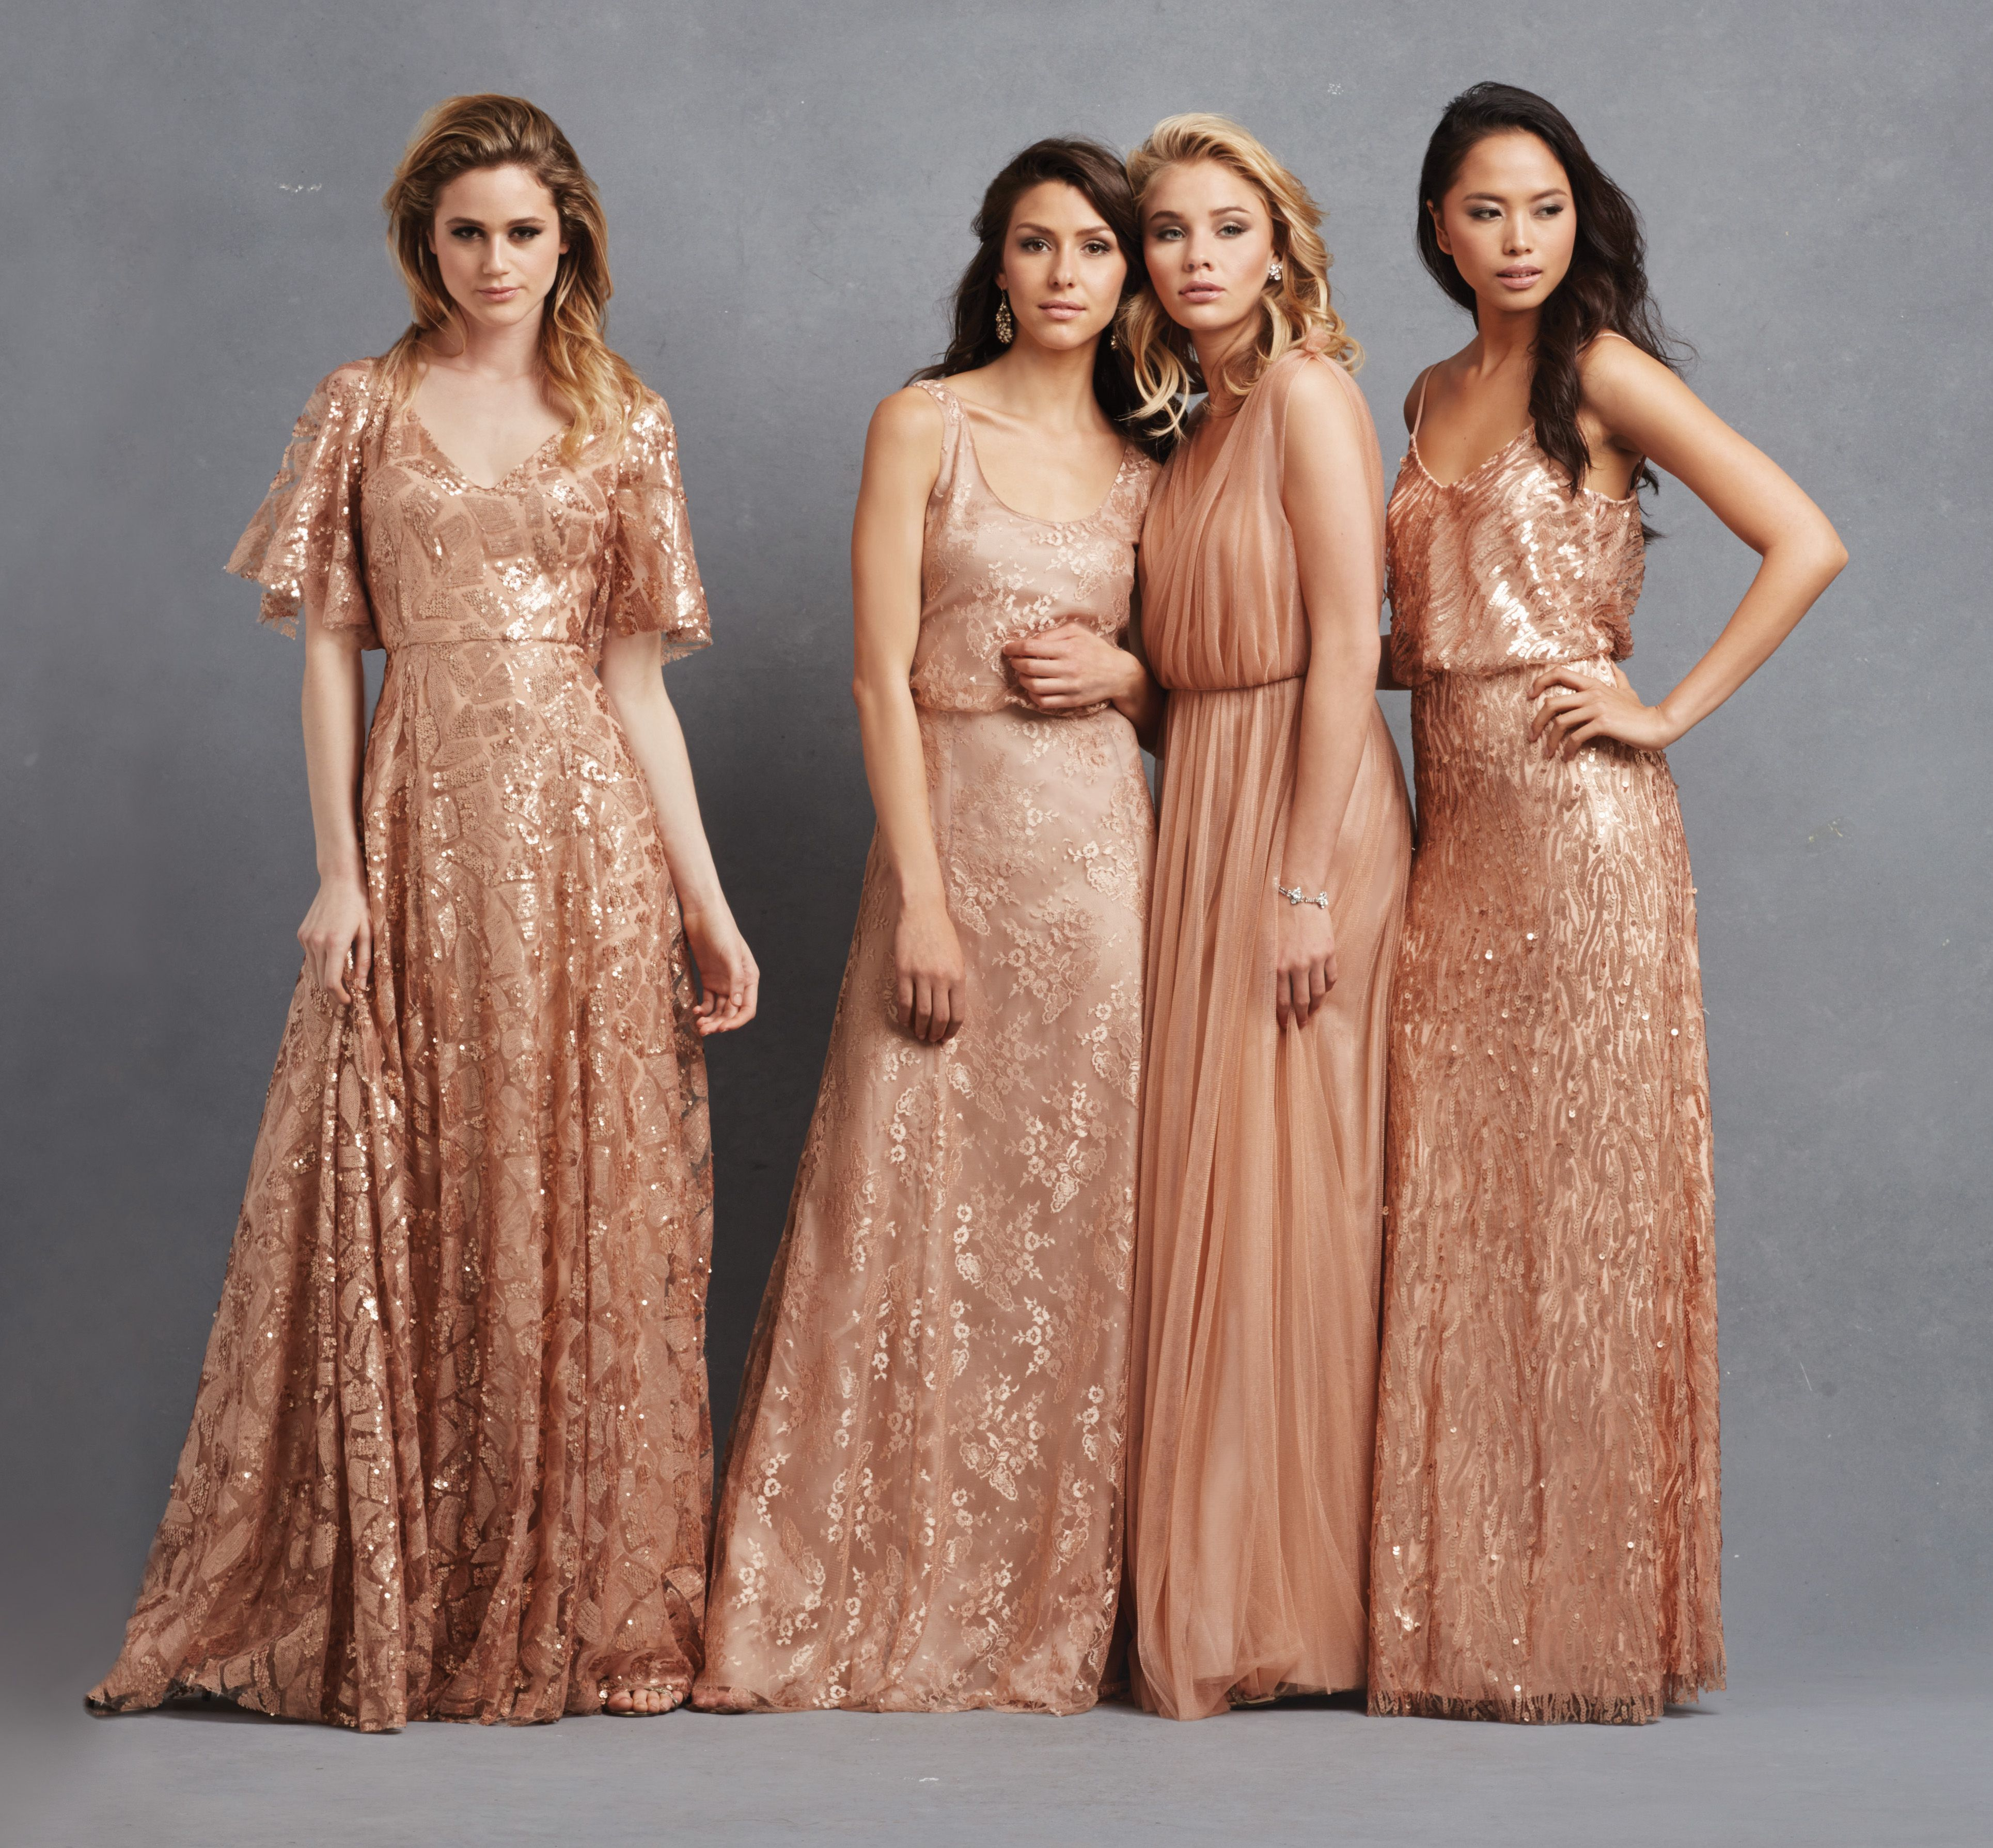 Rose gold mix and match donna morgan collection serenity the first ones dress style rose gold mix and match ombrellifo Images